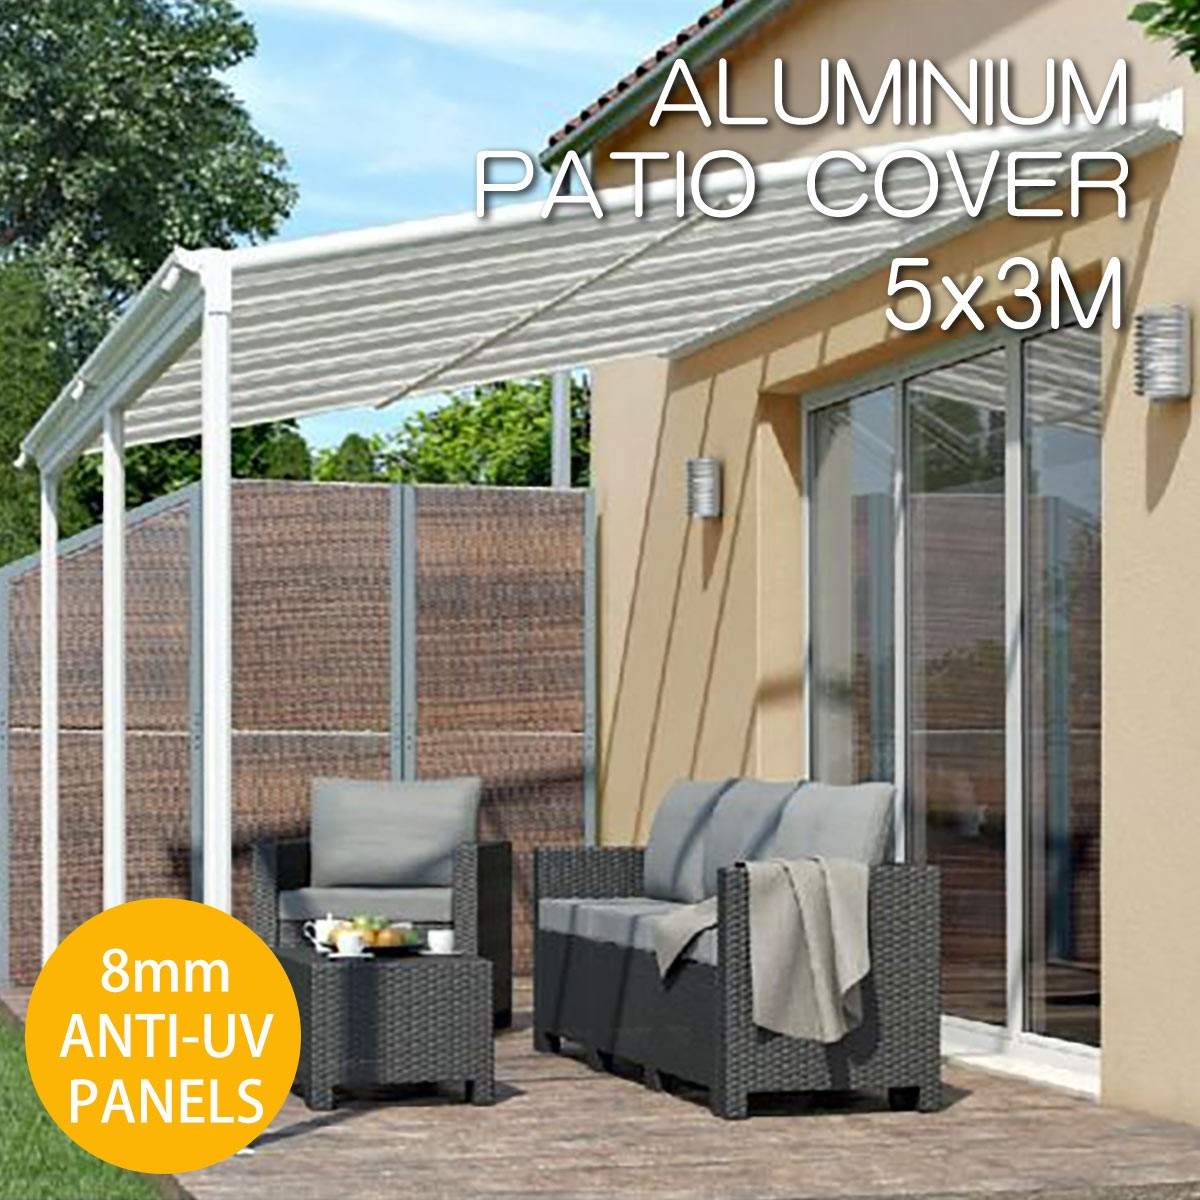 pergola kit aluminium outdoor patio deck cover 5 x 3m. Black Bedroom Furniture Sets. Home Design Ideas